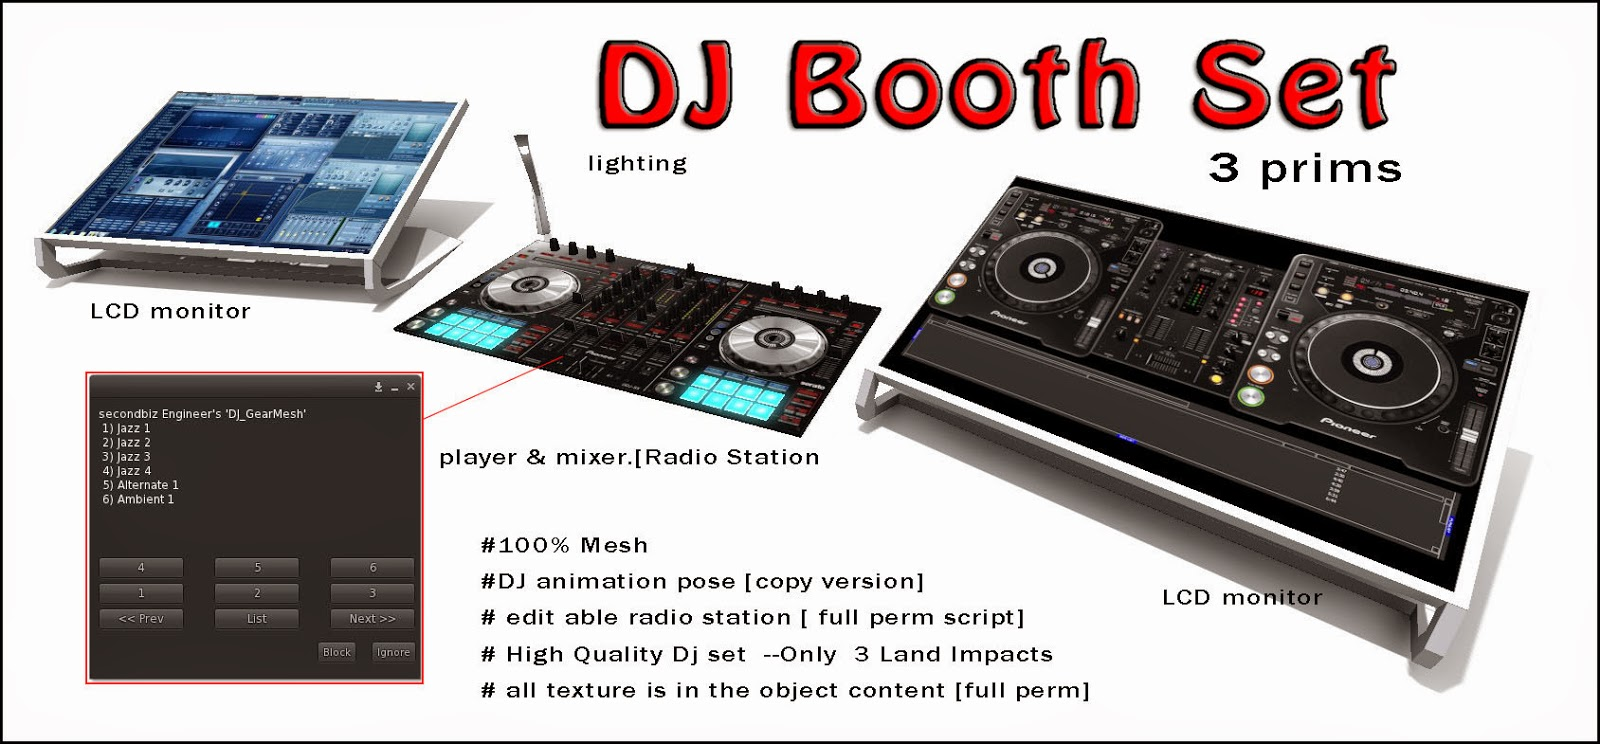 New Item For This Month: DJ Booth Set